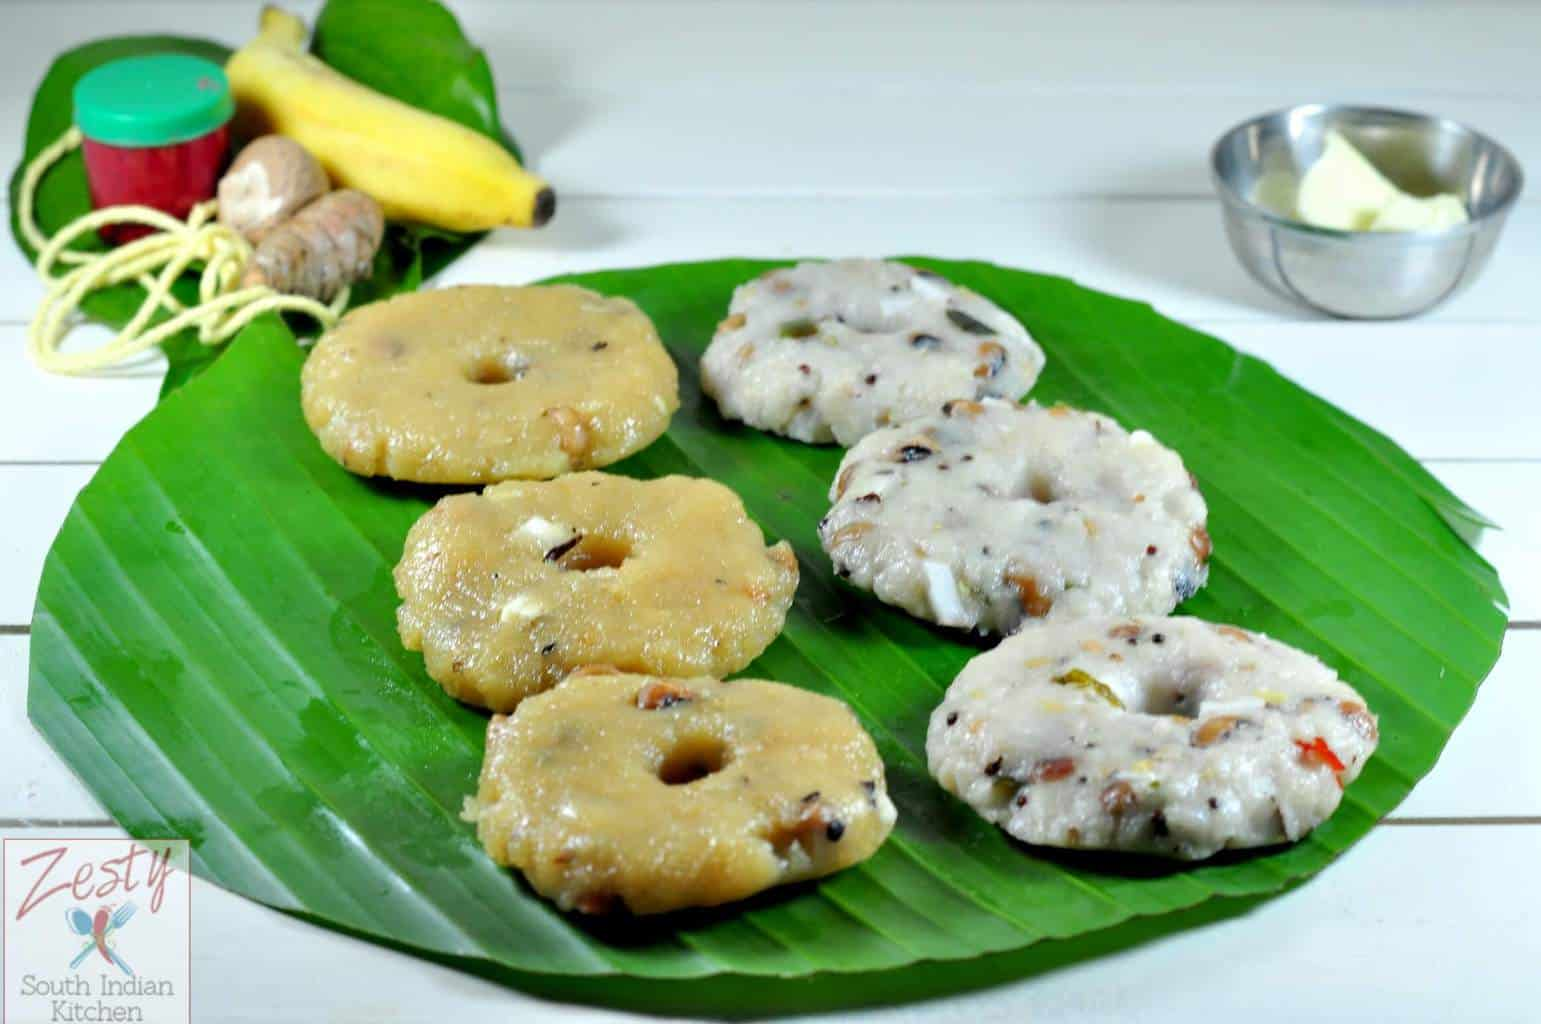 Karadaiyan nombu adai sweet and savory steamed rice cakes karadaiyan nombu adai sweet and savory steamed rice cakes zesty south indian kitchen forumfinder Image collections